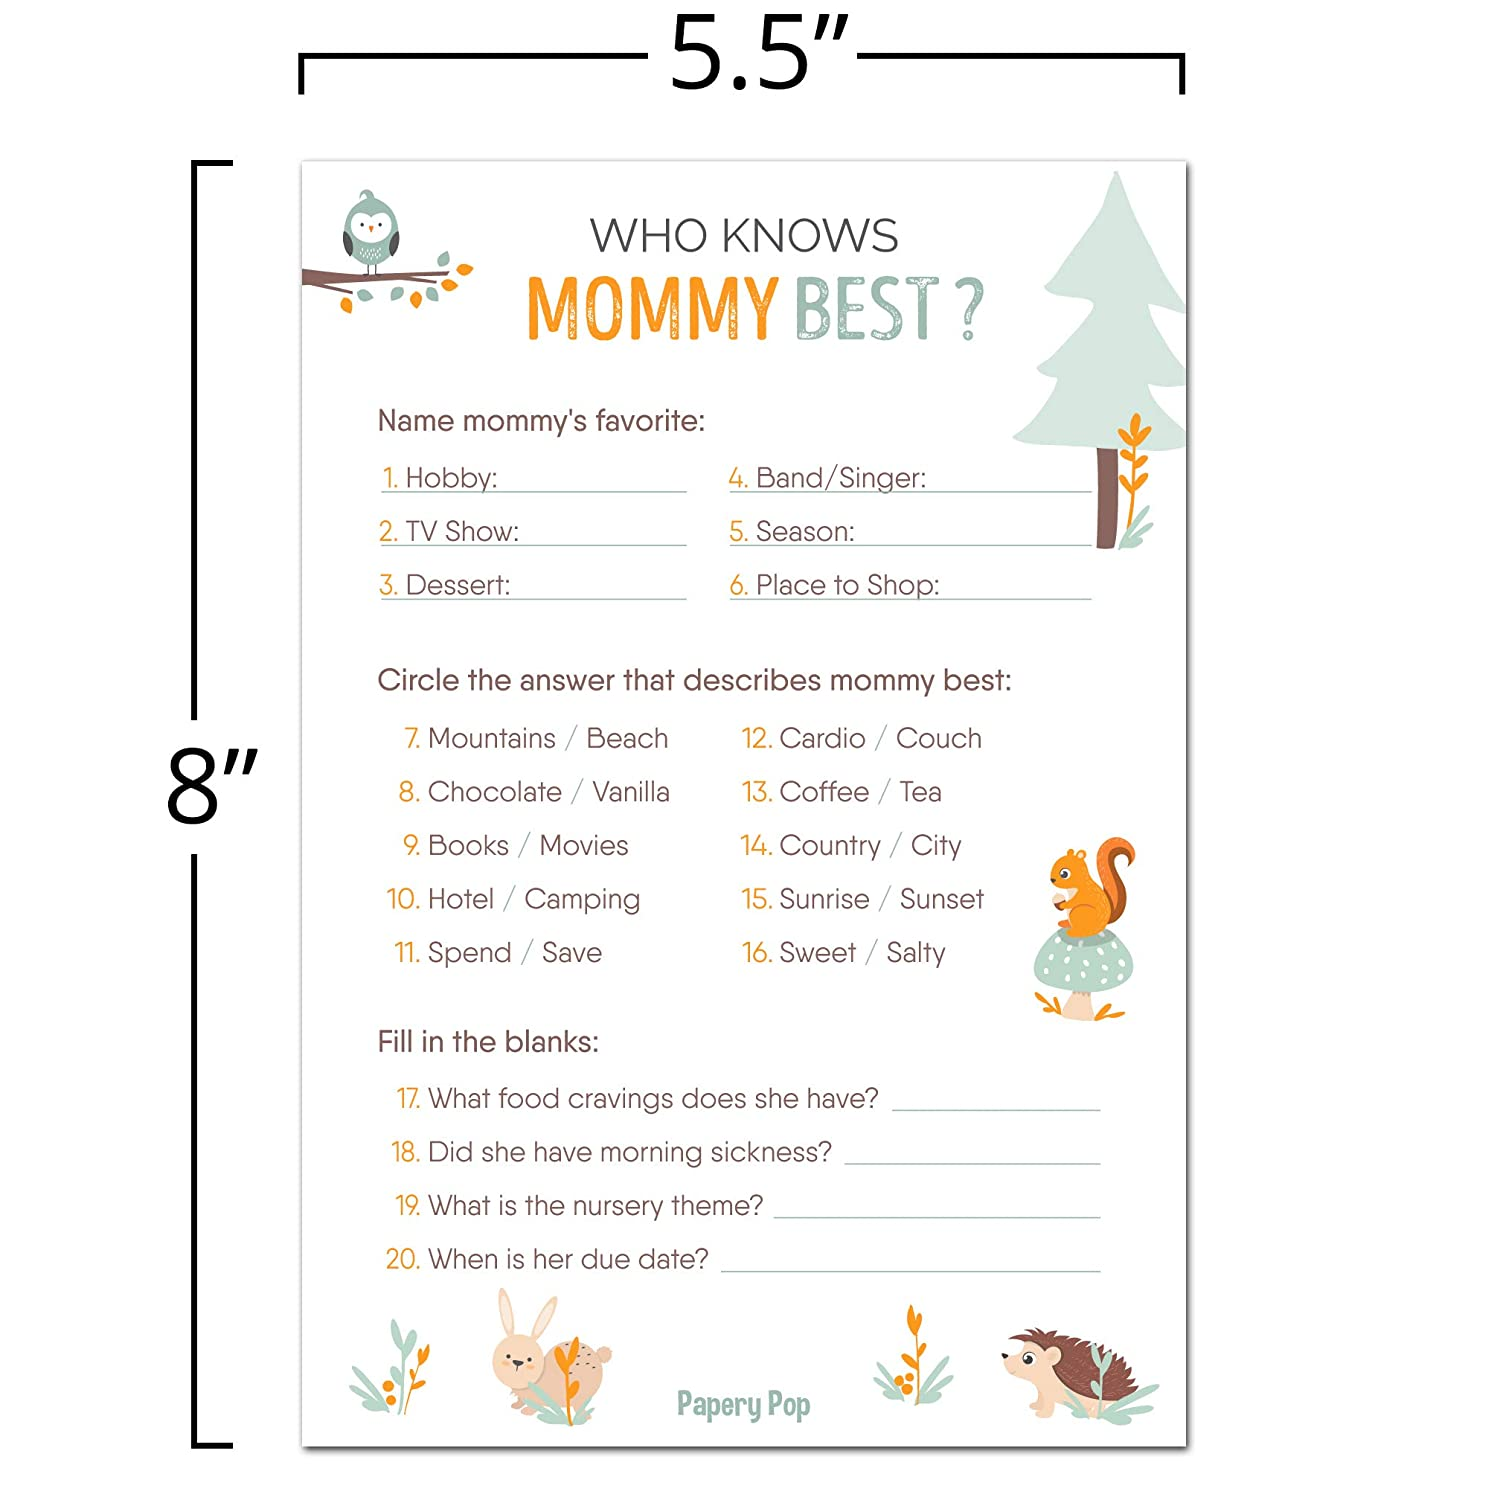 Amazon.com: Who Knows Mommy Best Game Cards (Pack of 50) - Baby Shower  Games Ideas for Boy or Girl - Gender Neutral - Party Activities Supplies -  Woodland ...